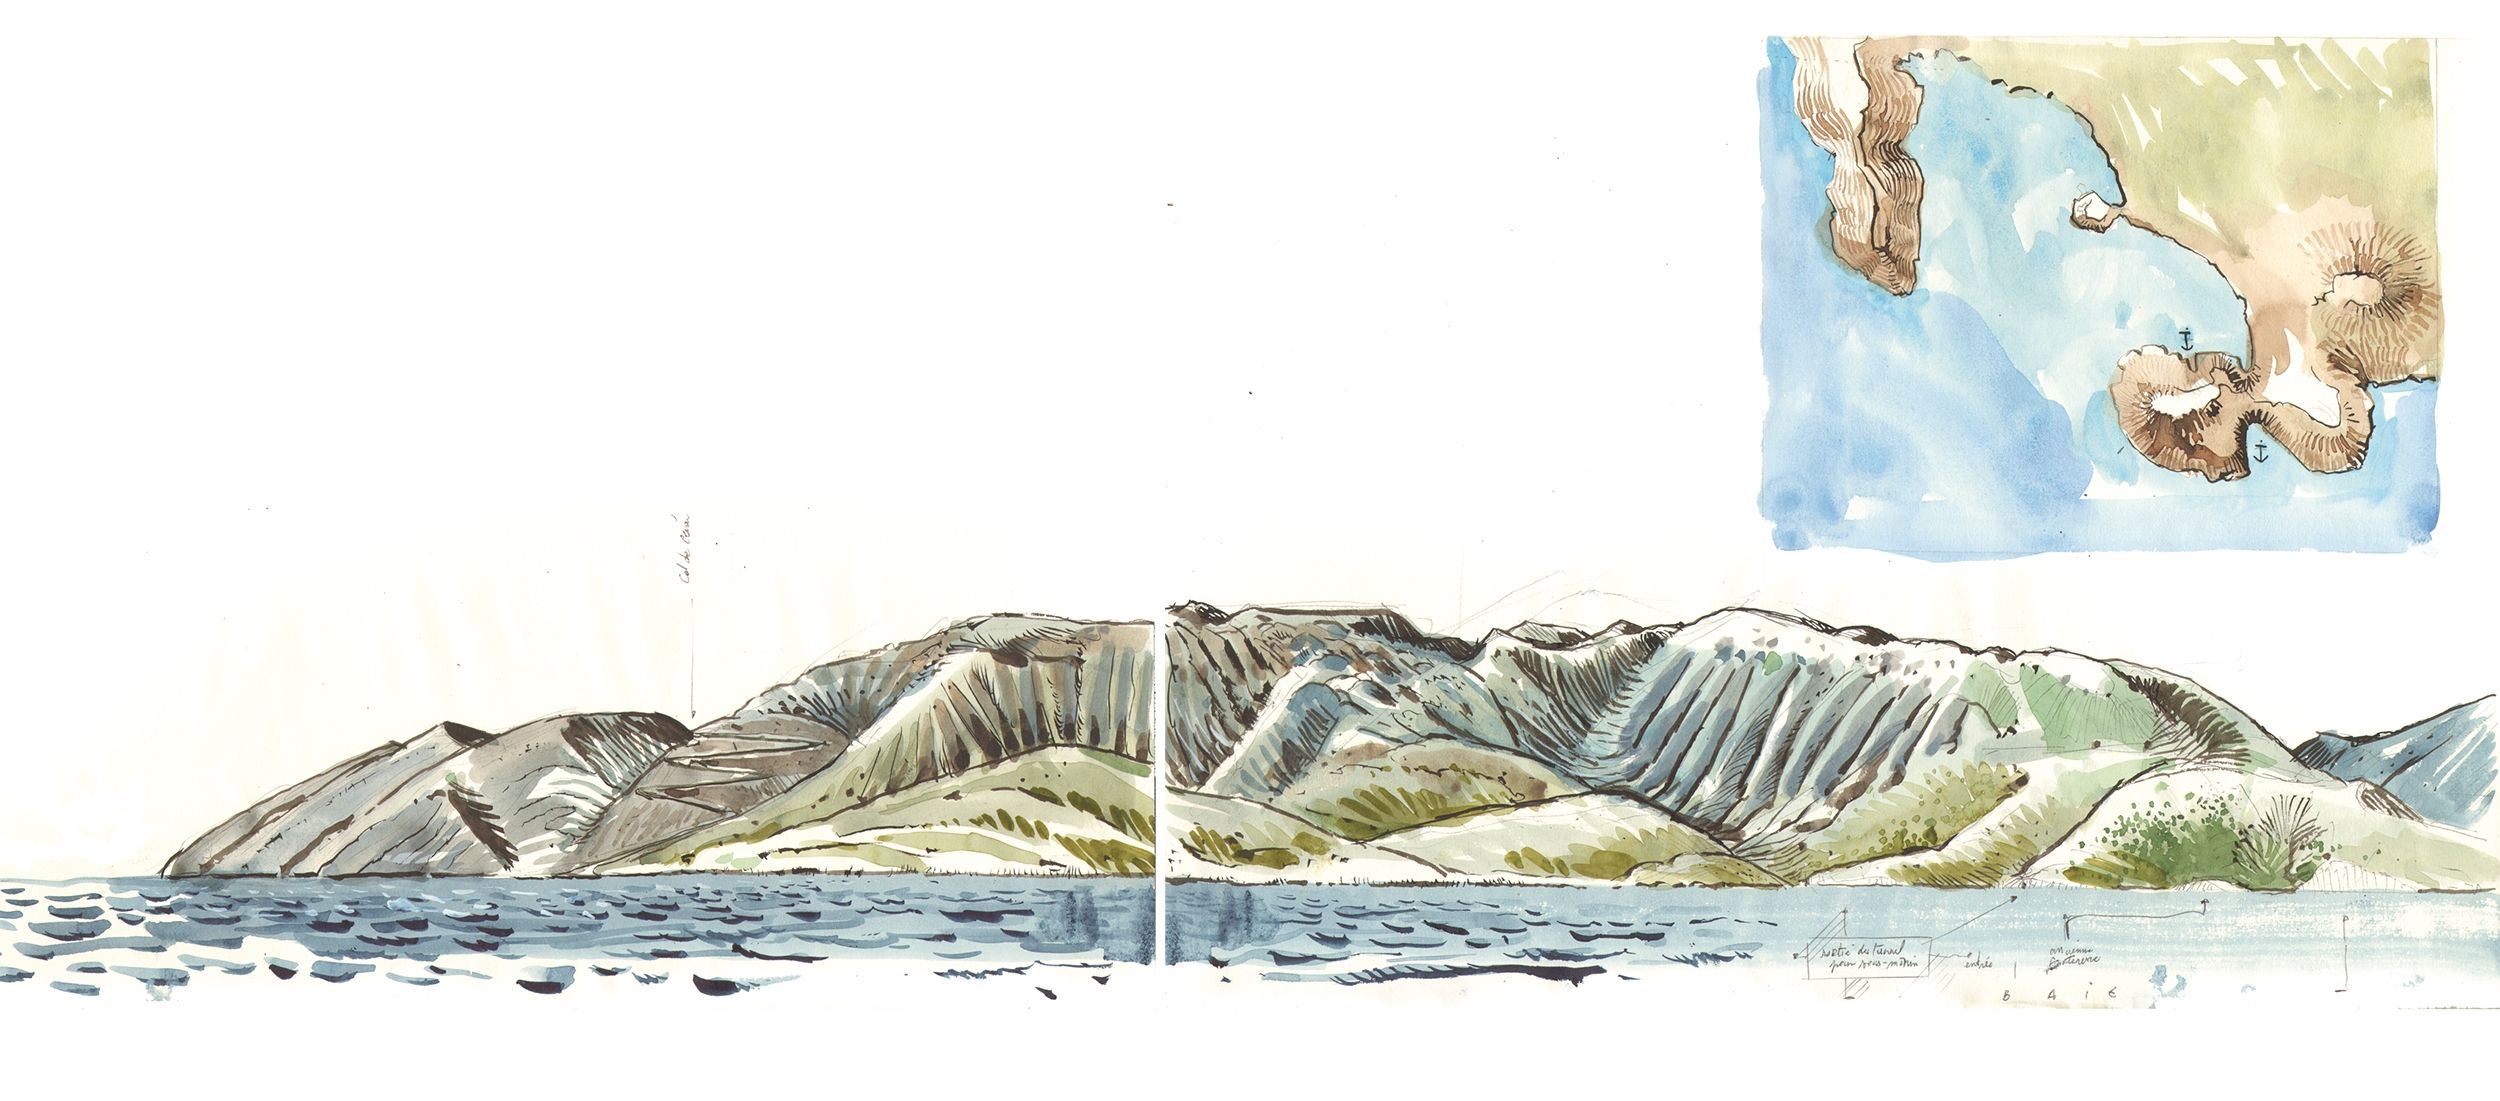 Drawing by Antoine Bugeon, depcting just how impressive the Albanian mountains are, and how they literally fall in the sea. On the top side, Porto Palermo anchorage, last shelter before Orikum © Octopus Foundation